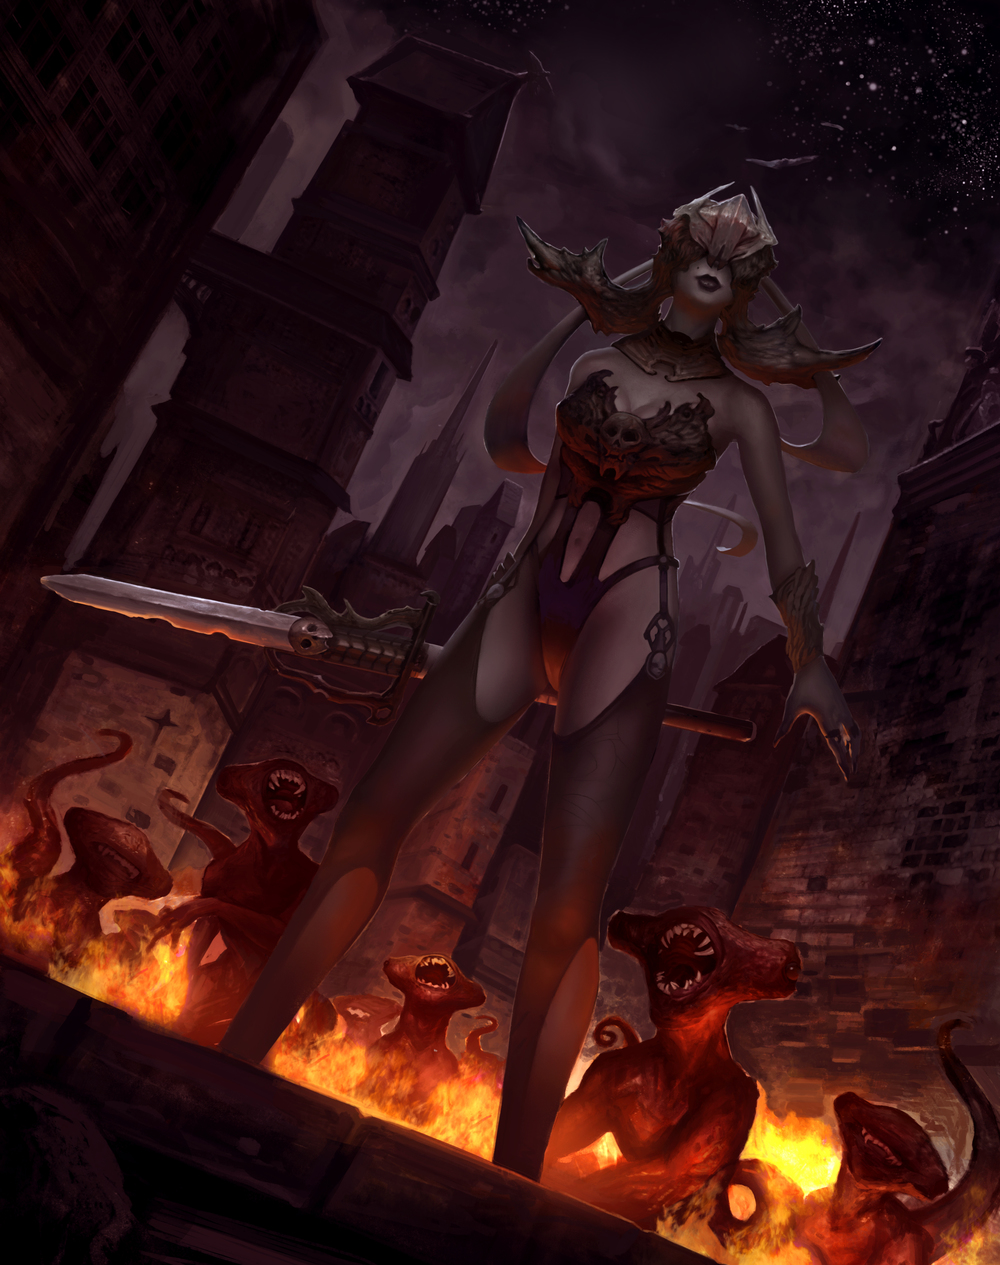 Card-illustration-Chynan demon sorceress__v003_color corrected-Recovered.jpg